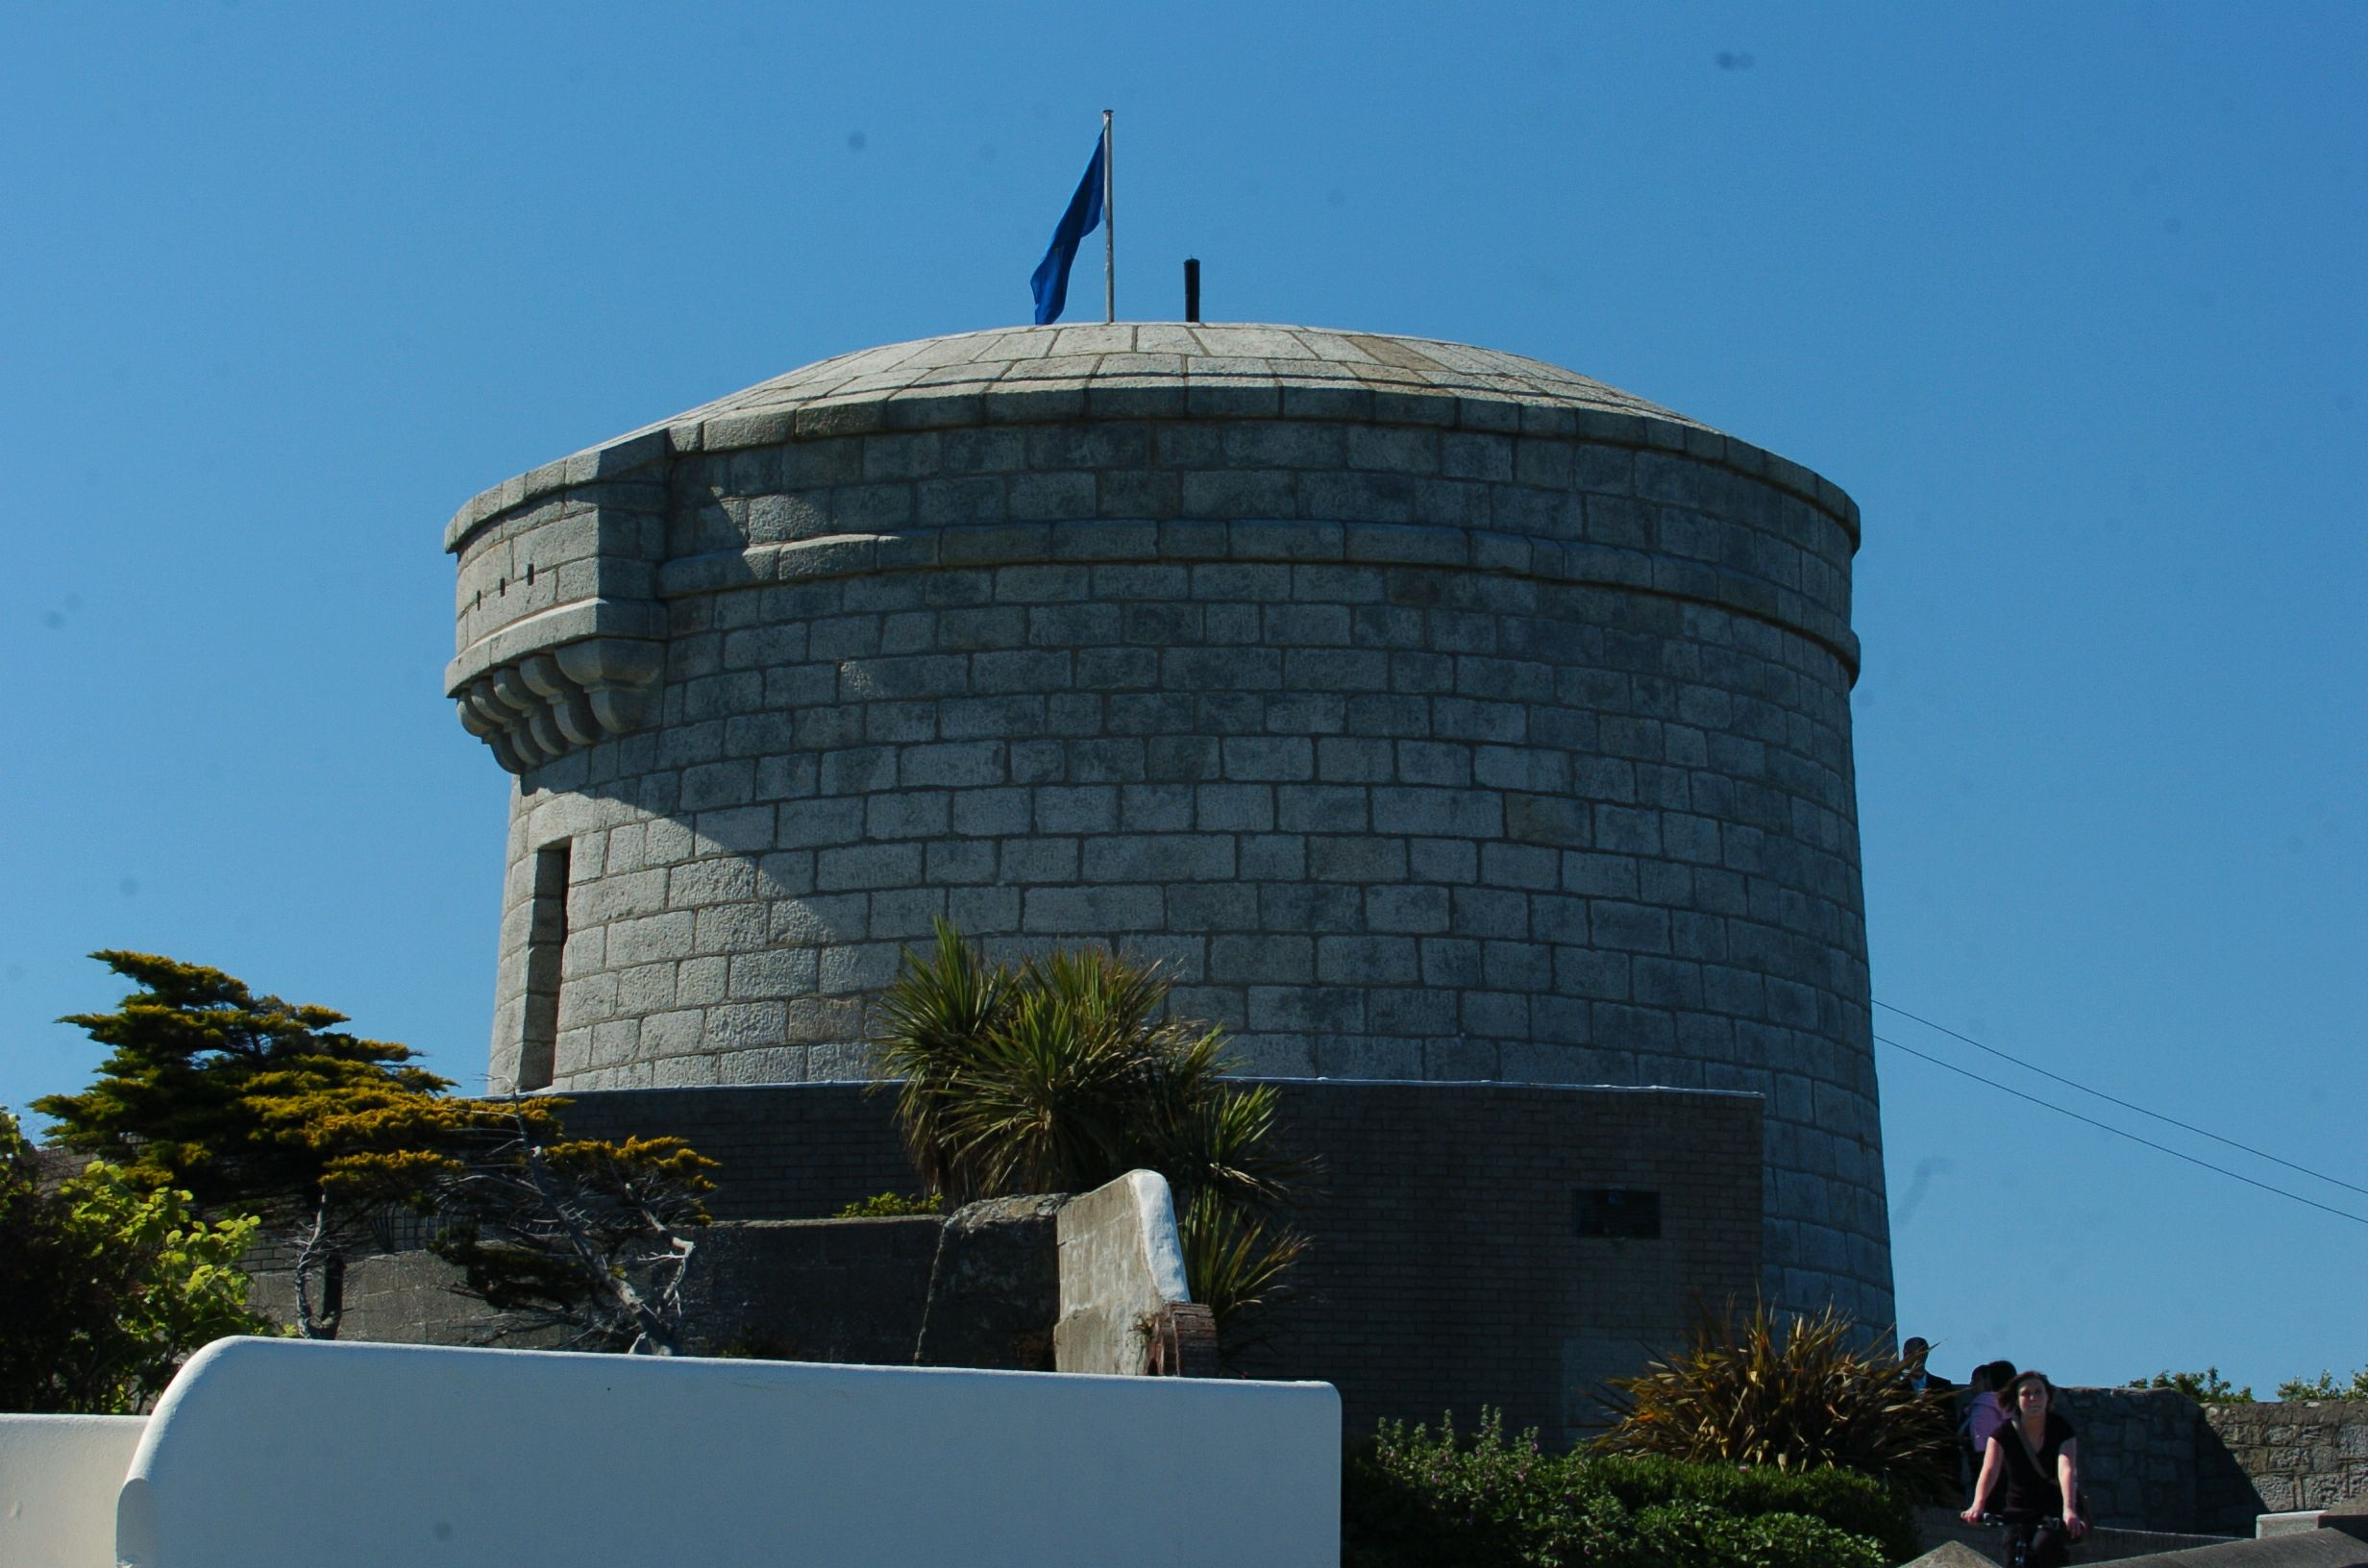 The Martello tower in Sandycove, Dublin, in which William Bulfin and James Joyce met one Sunday morning